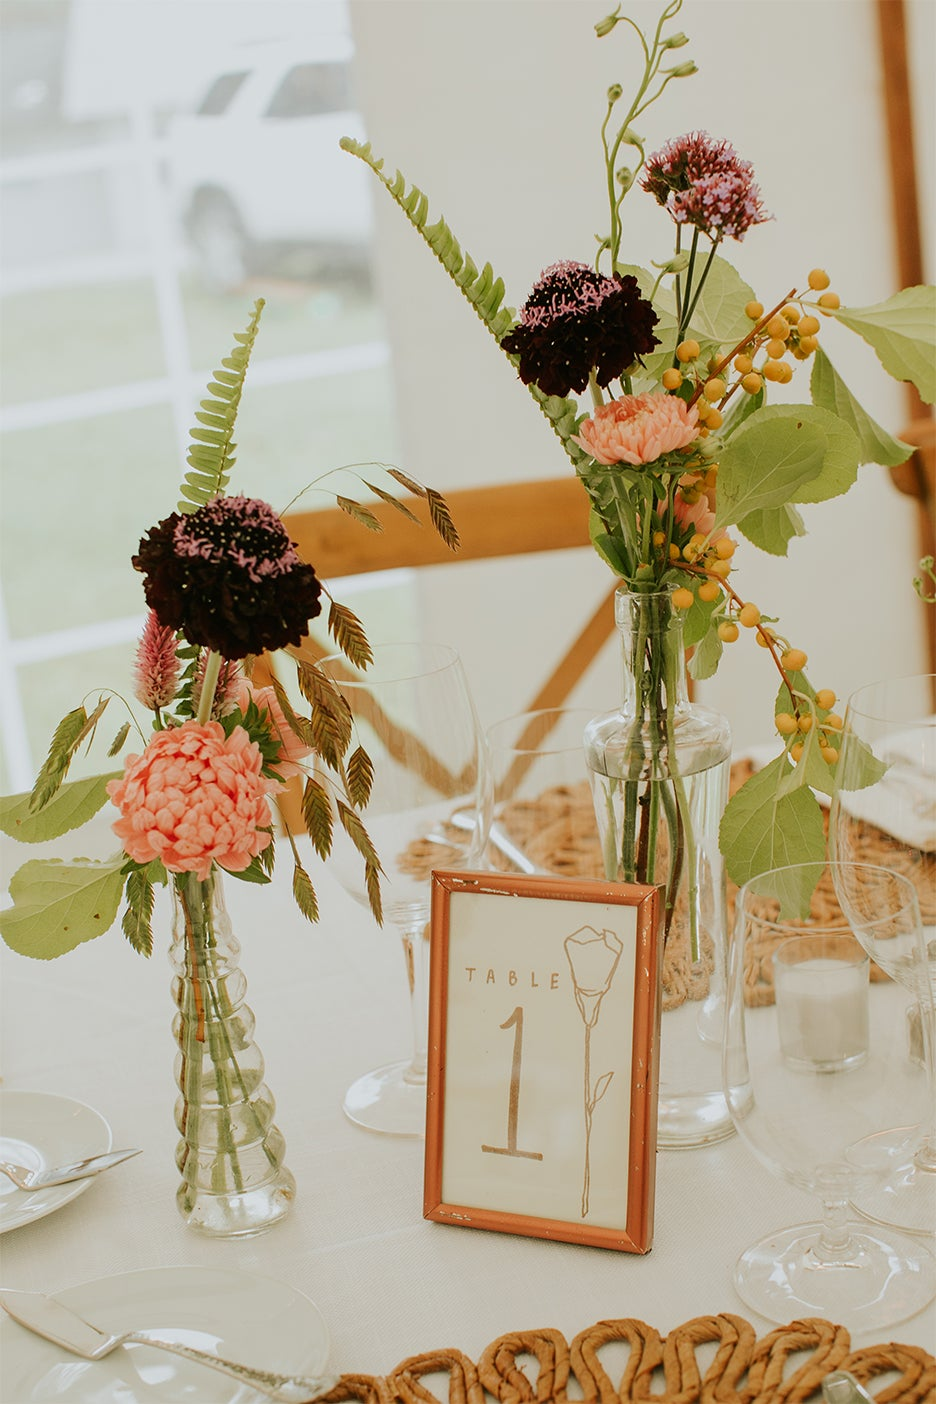 Flowers and table number